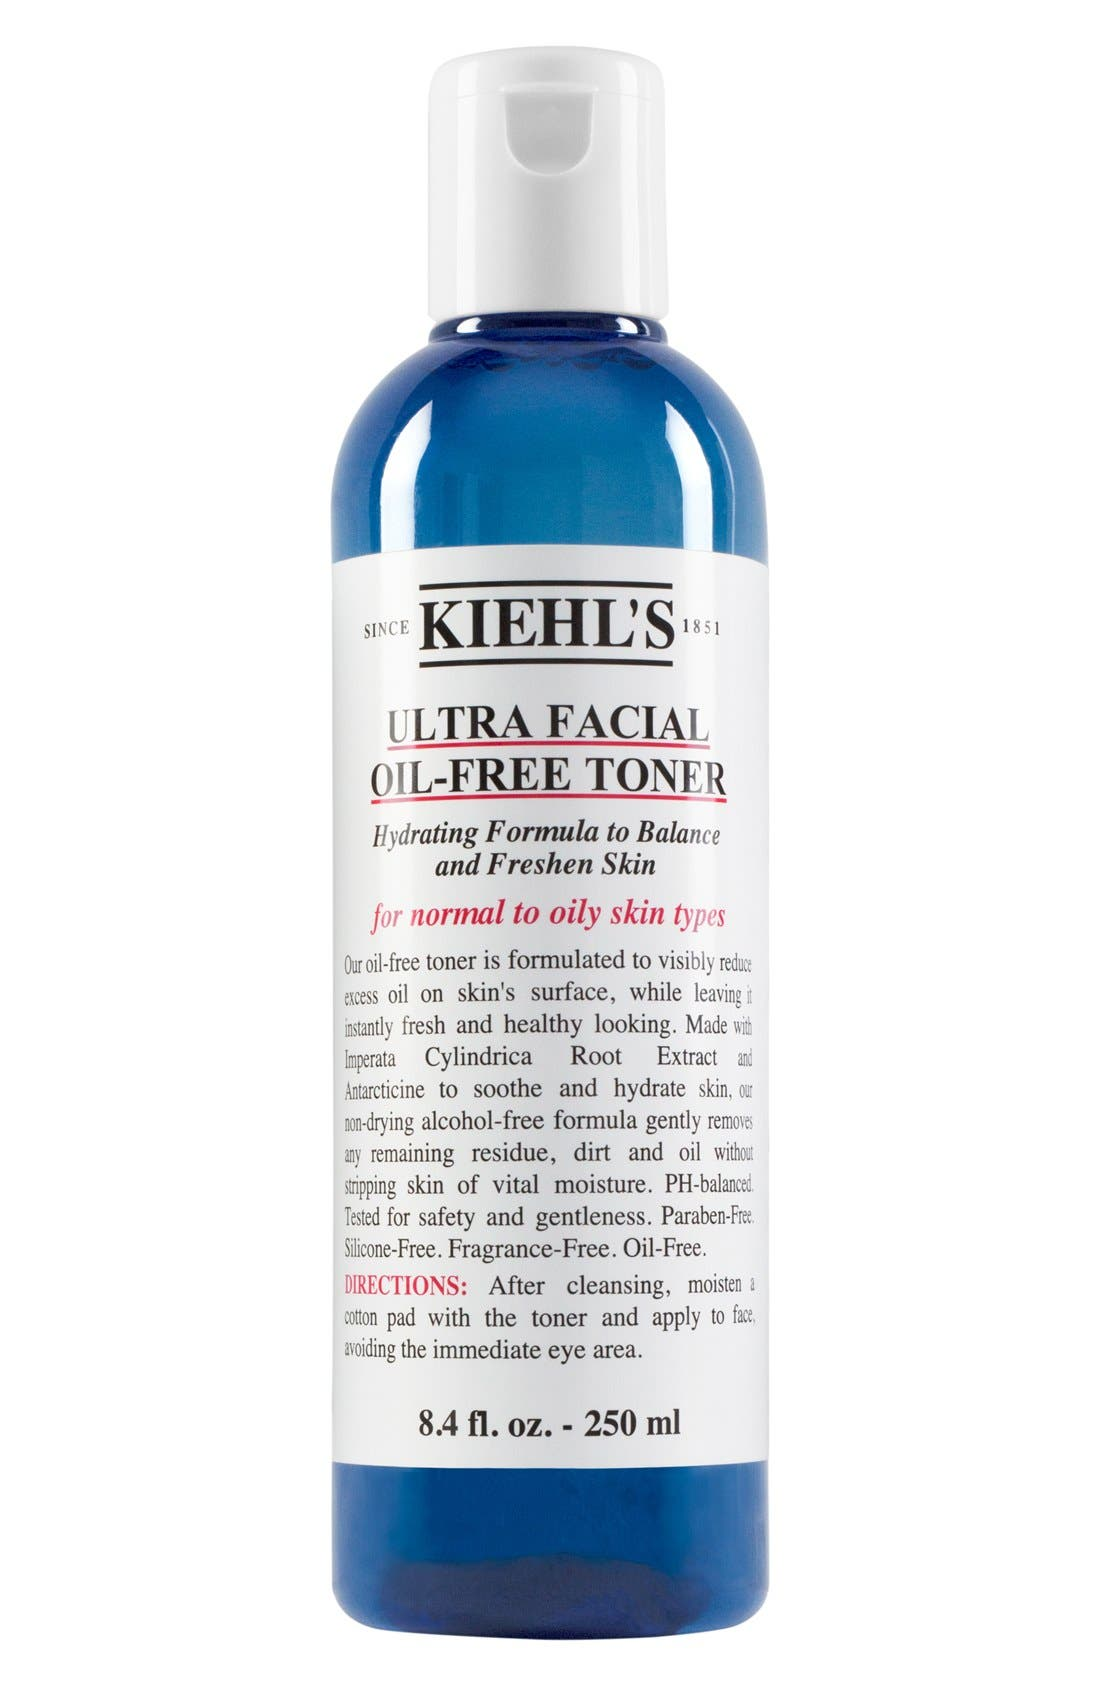 Kiehl's Since 1851 'Ultra Facial' Oil-Free Toner